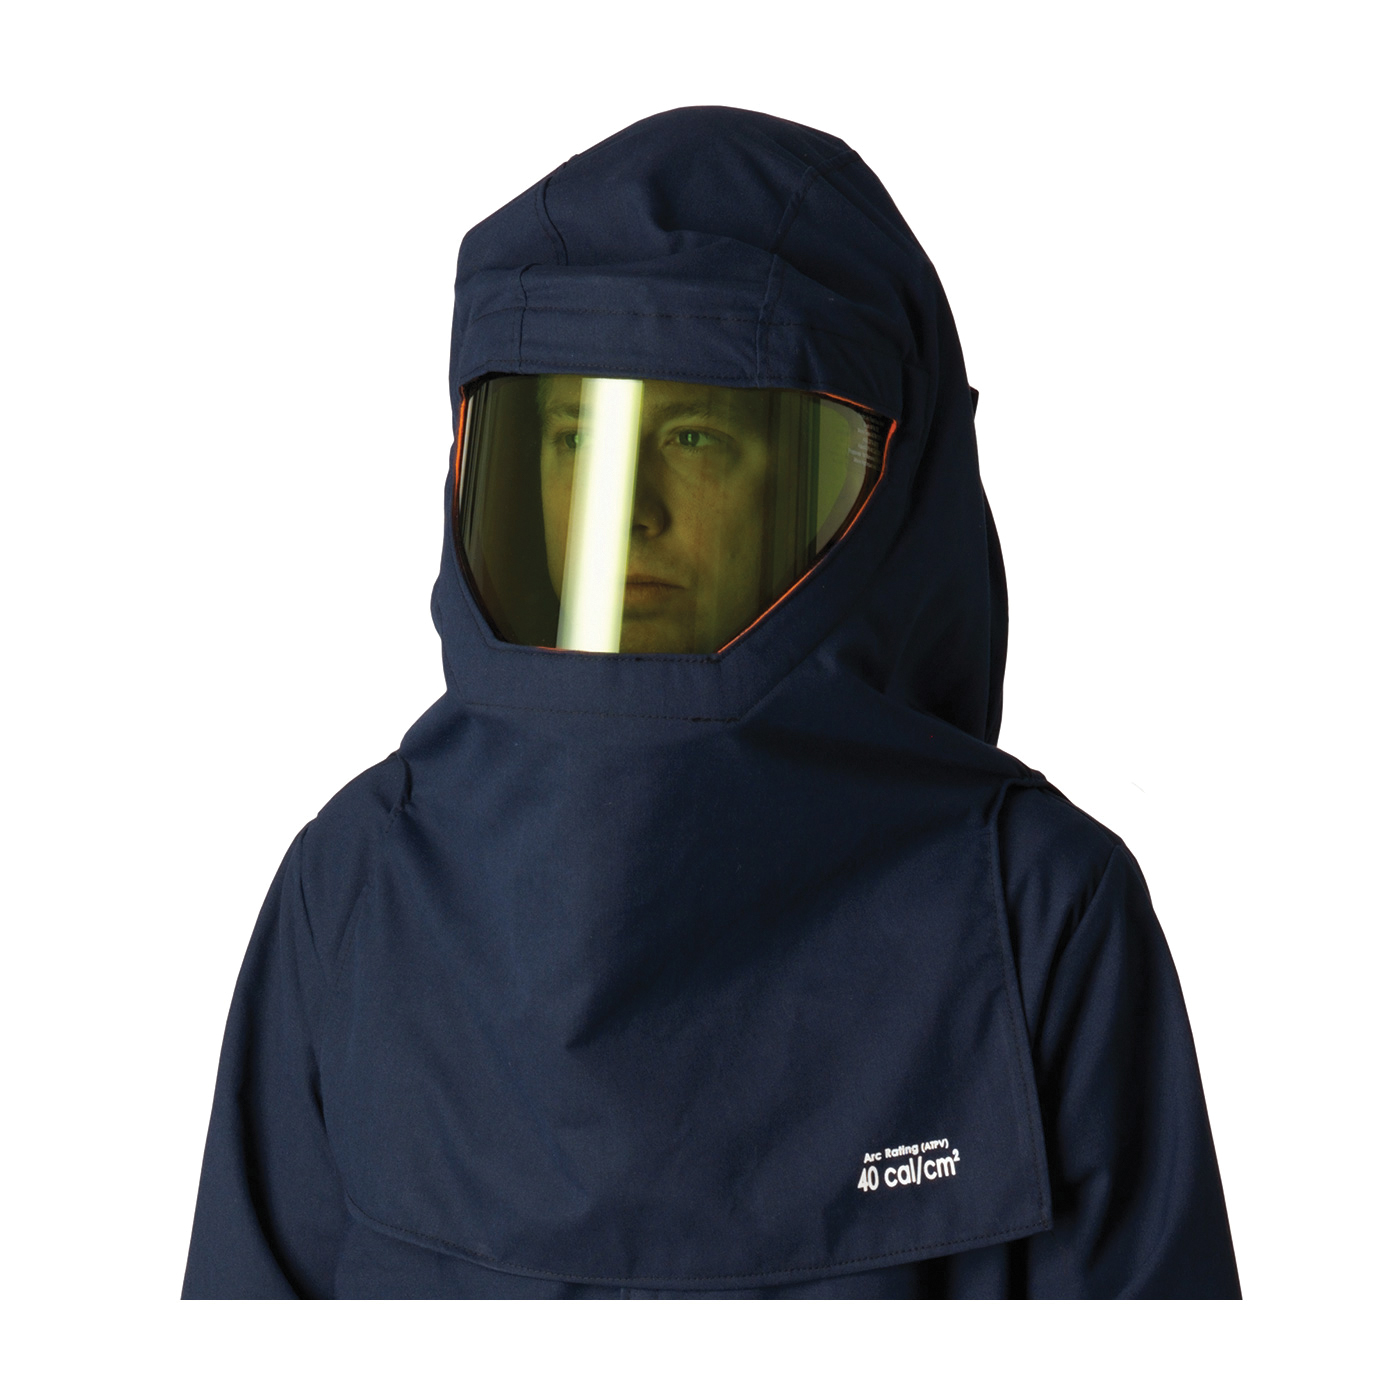 PIP® 9150-5236V Double Layer Ultralight Ventilated Arc and Flame Resistant Hood, Universal, Navy Blue Shell/Orange Lining, 32 in L, DuPont™ Protera®/Westex® UltraSoft® Interlock Knit, 9 oz, 13 oz Fabric